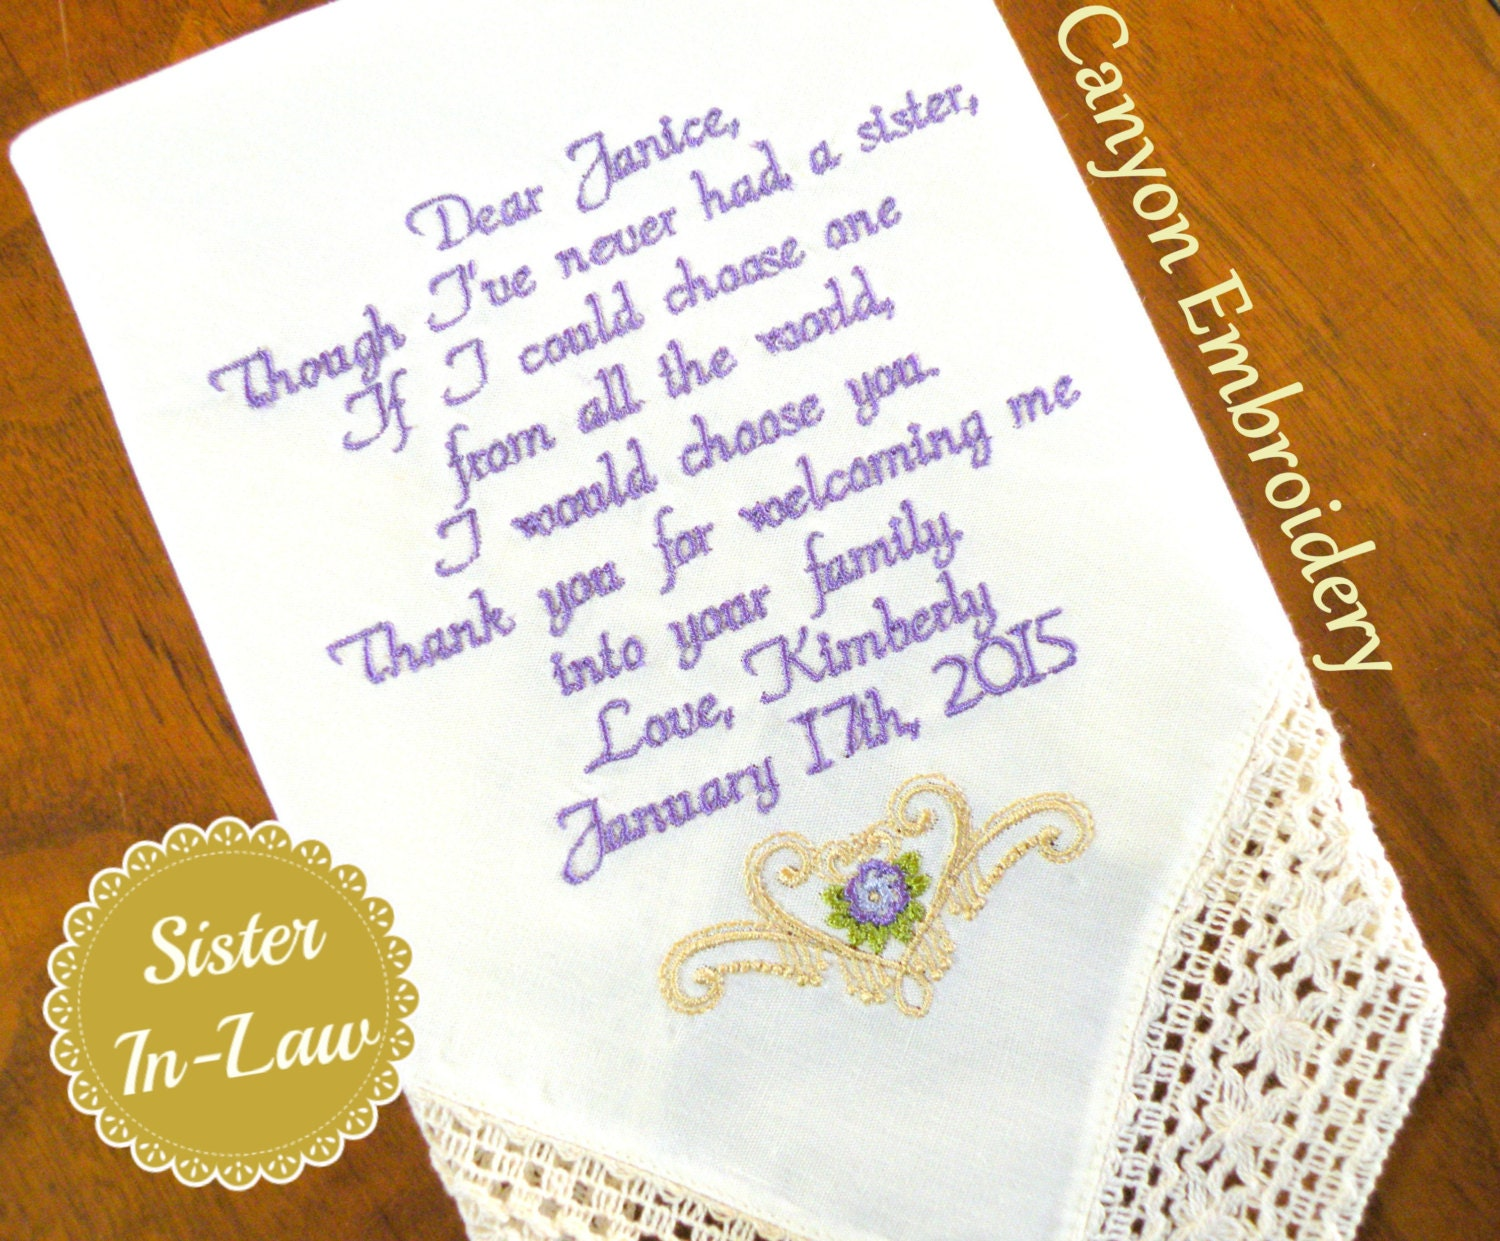 Wedding Gift For Brother And Sister In Law : Sister Sister In-Law Wedding Gift Embroidered Wedding